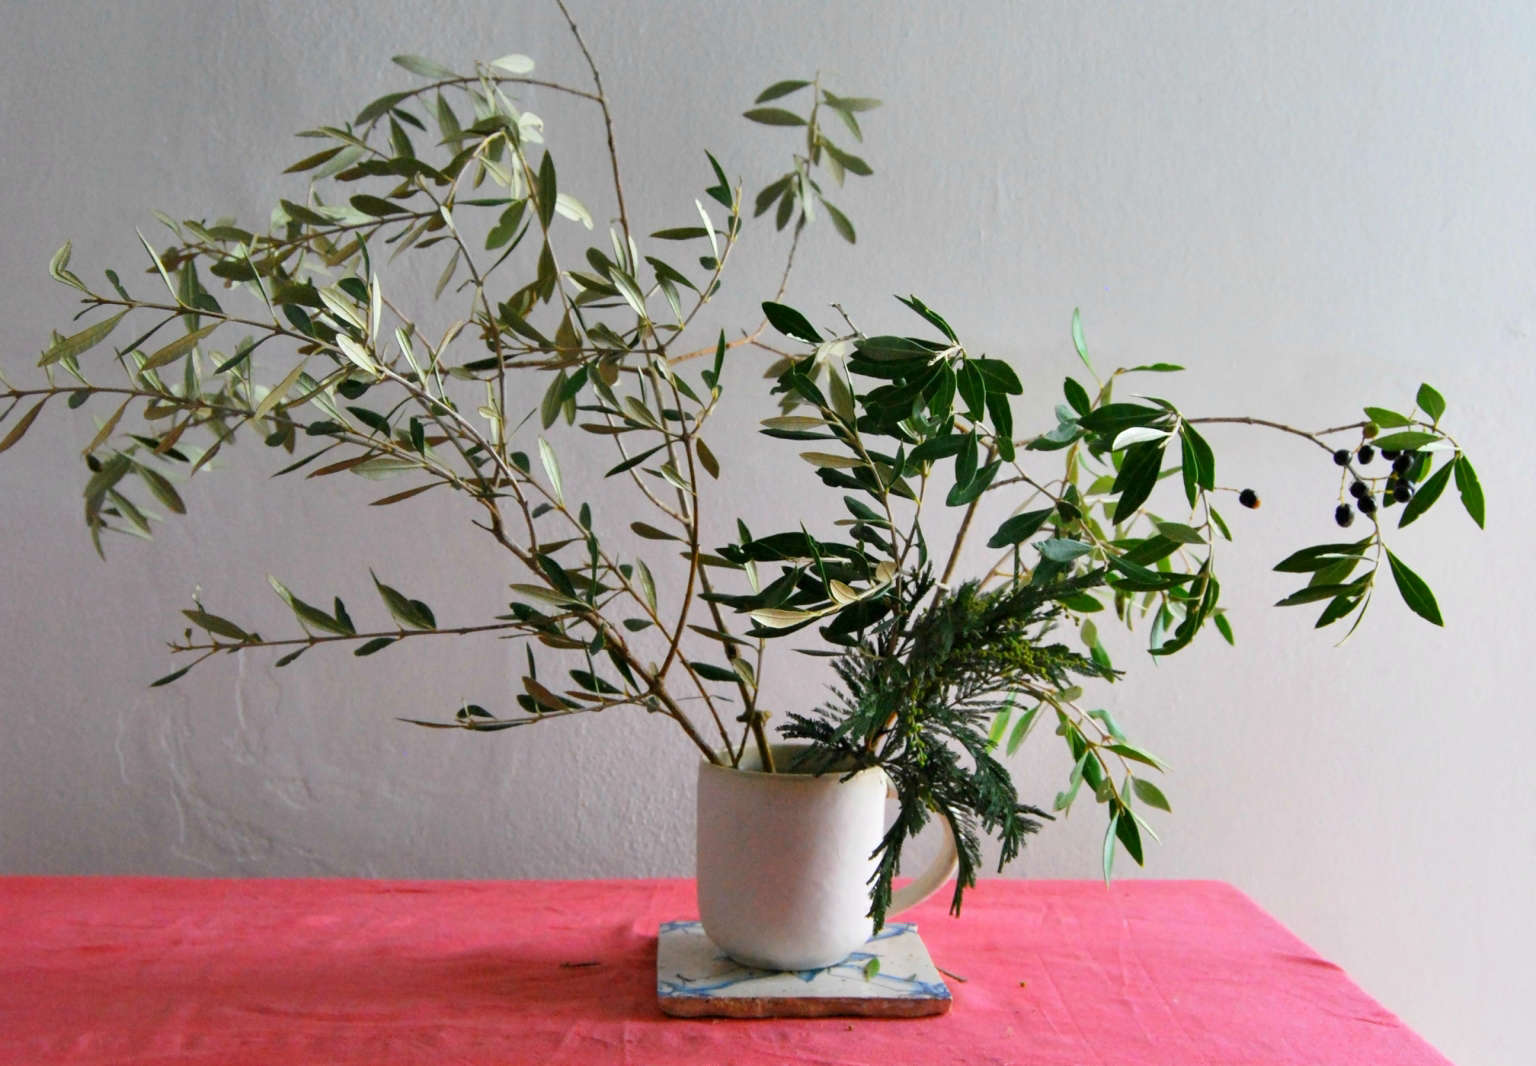 Olive branches rethinking an underappreciated symbol of peace olive trees are common in mediterranean climates where olives and their oil are a mainstay of the cuisine but the leaves and branches have also been used buycottarizona Choice Image